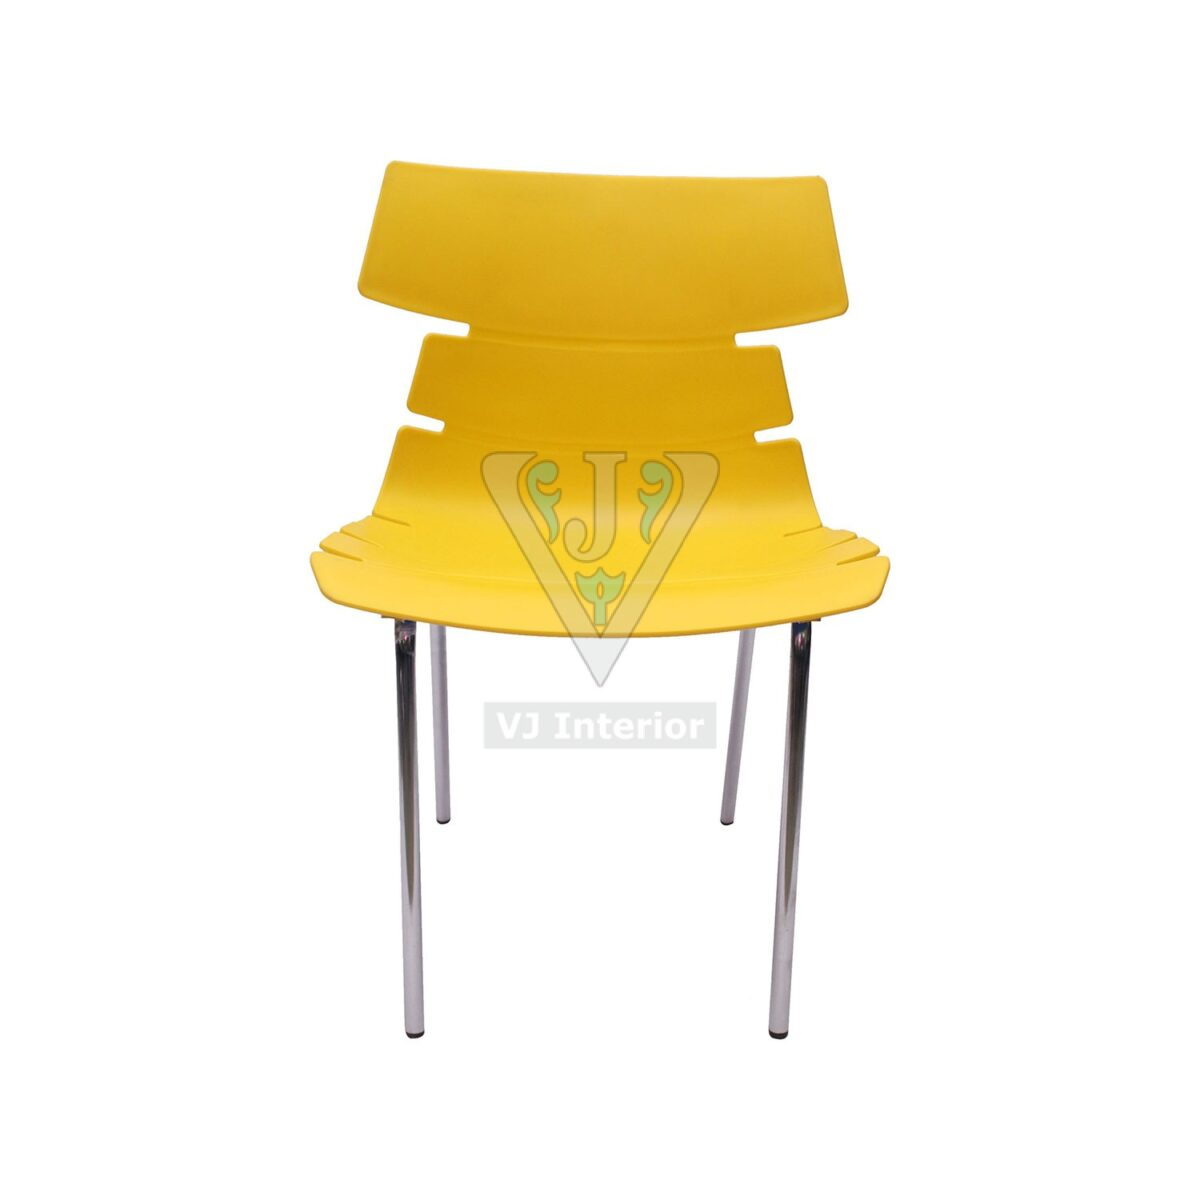 THE ALISAR STEEL FRAME PLASTIC CHAIR YELLOW